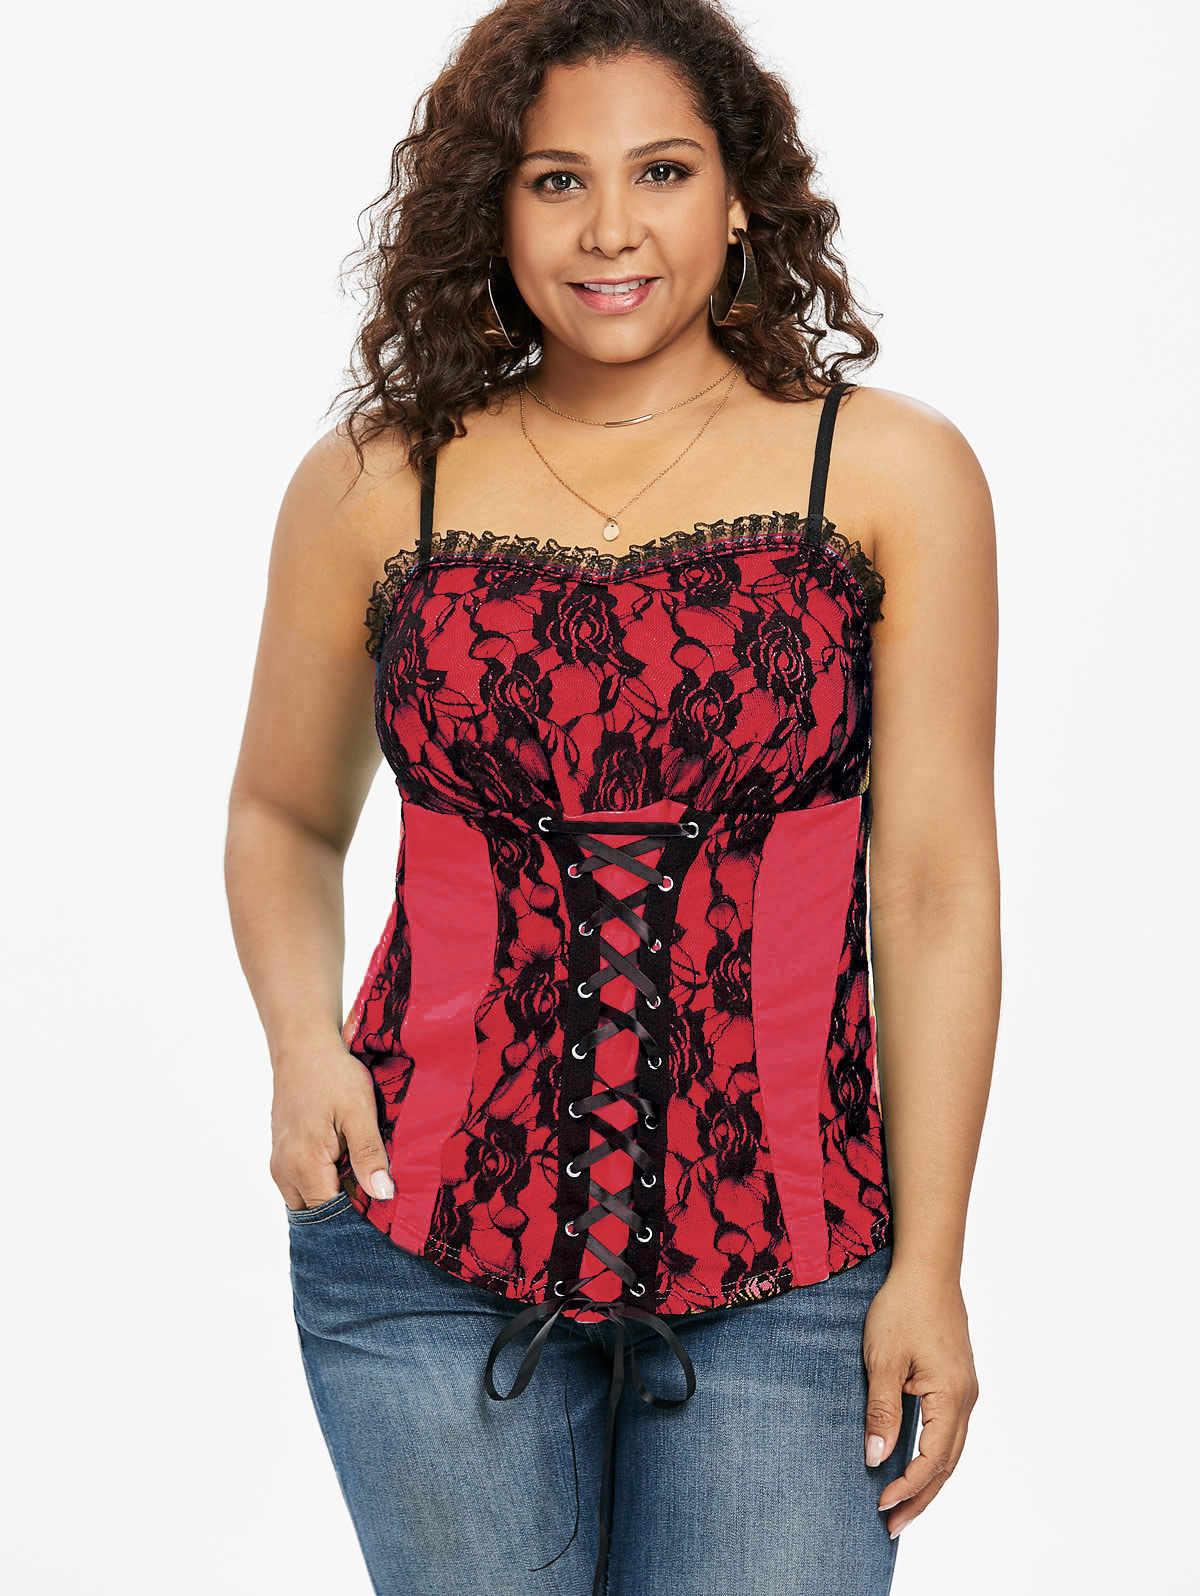 7057b801b4667 Wipalo Plus Size 5XL Floral Lace Up Tank Top Empire Waist Two Tone Ruffle  Trim Vintage